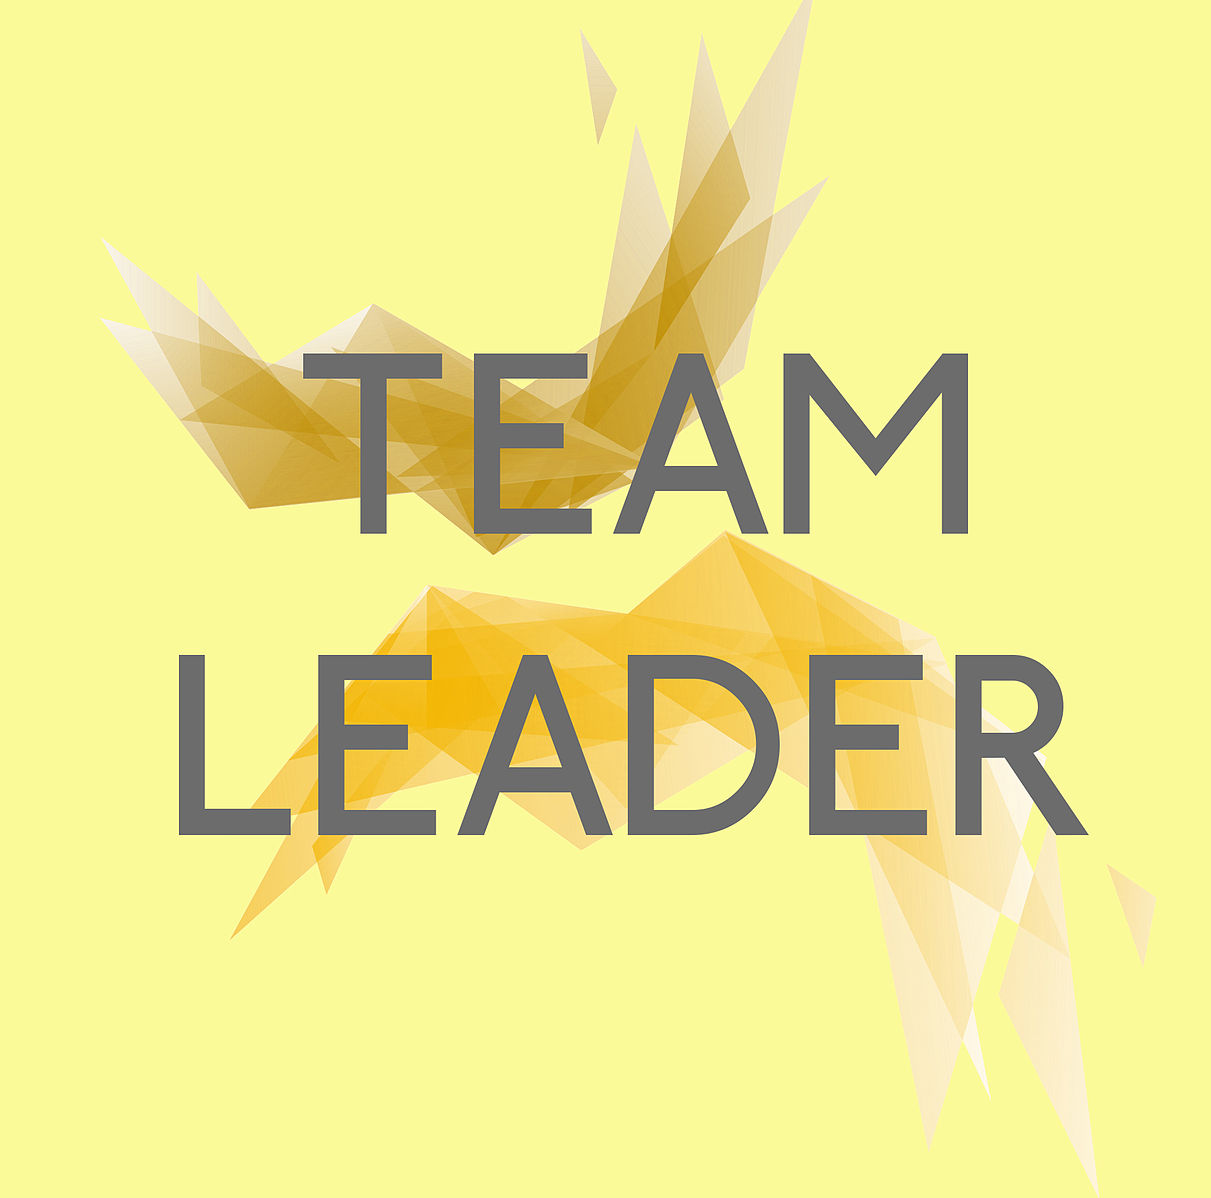 Difference Between Subject Matter Expert and Team Leader